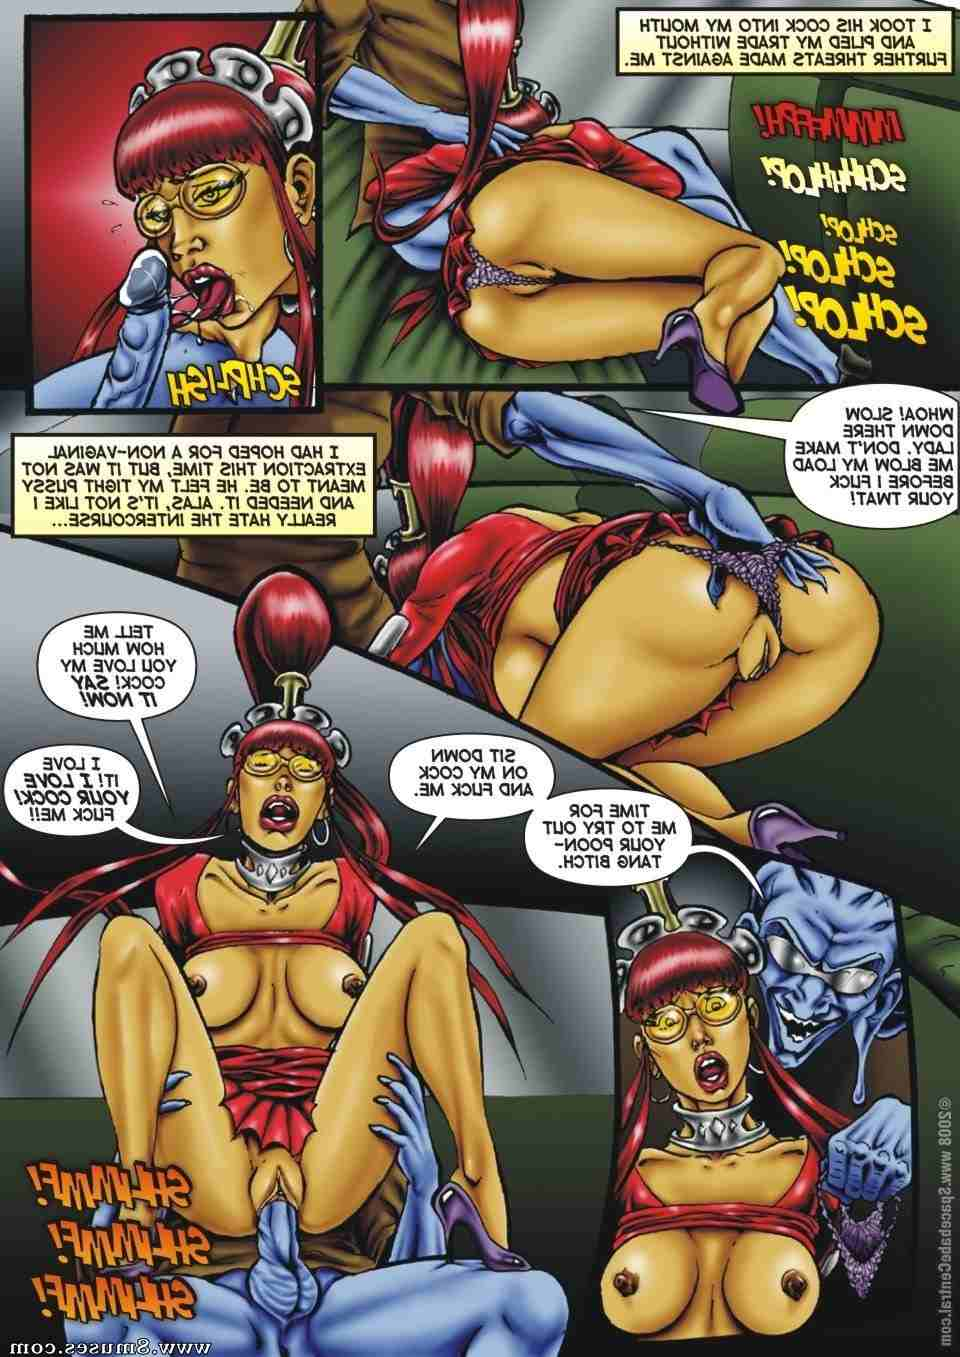 Central-Comics/Space-Babe-Central/Alien-Huntress Alien_Huntress__8muses_-_Sex_and_Porn_Comics_8.jpg